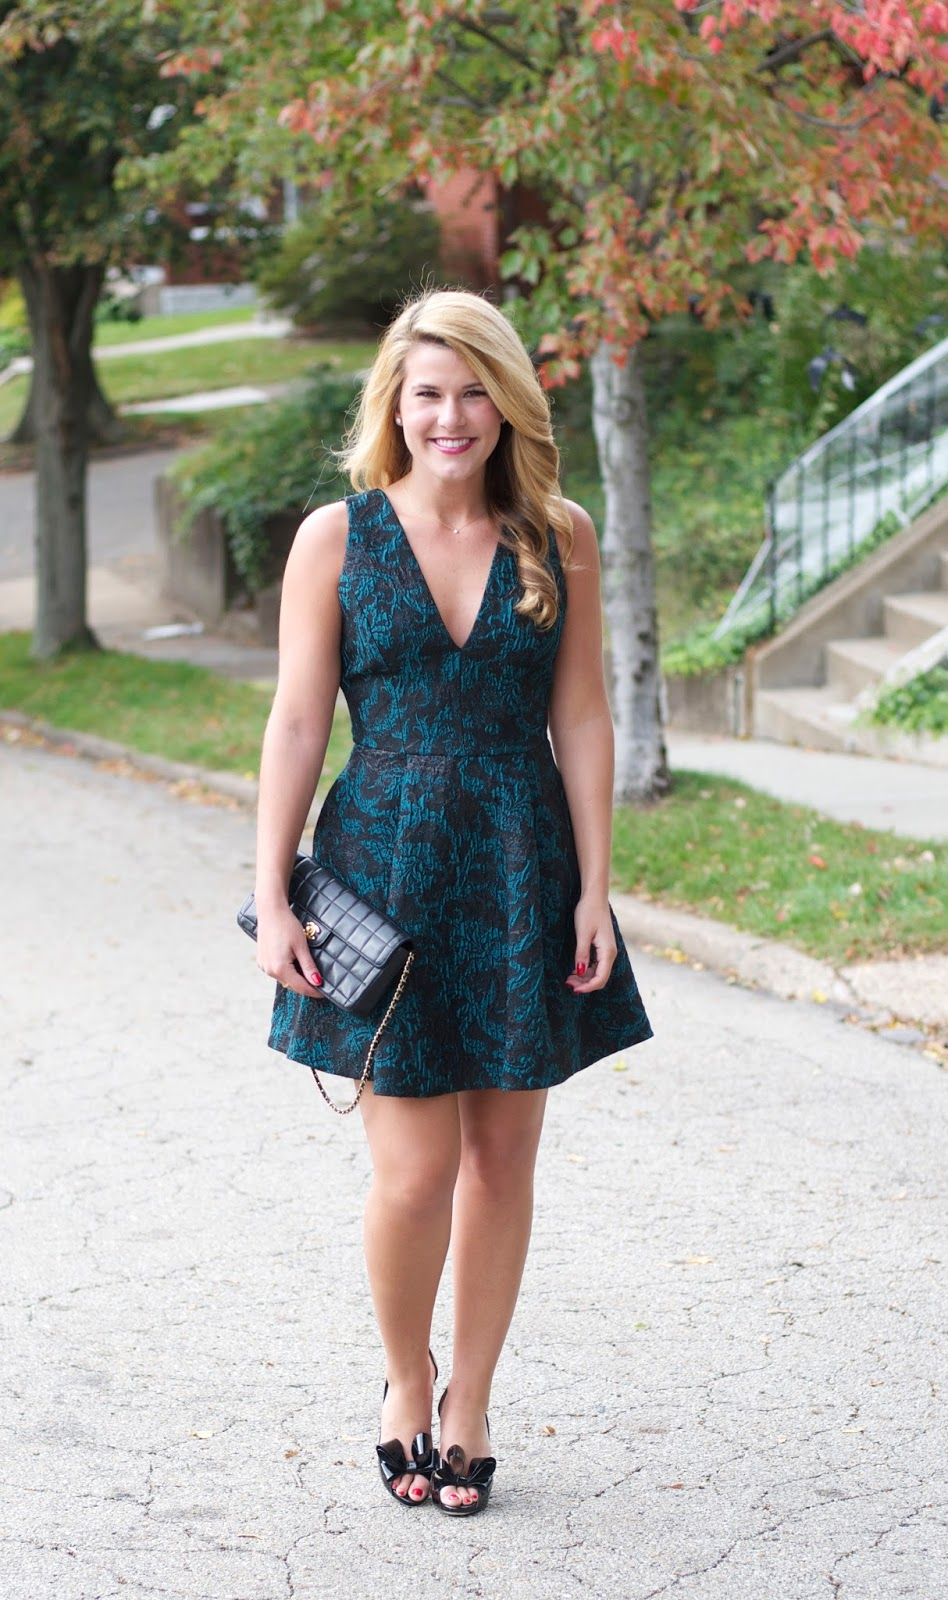 Summer Wind Pittsburgh Steelers Fashion Show 2015